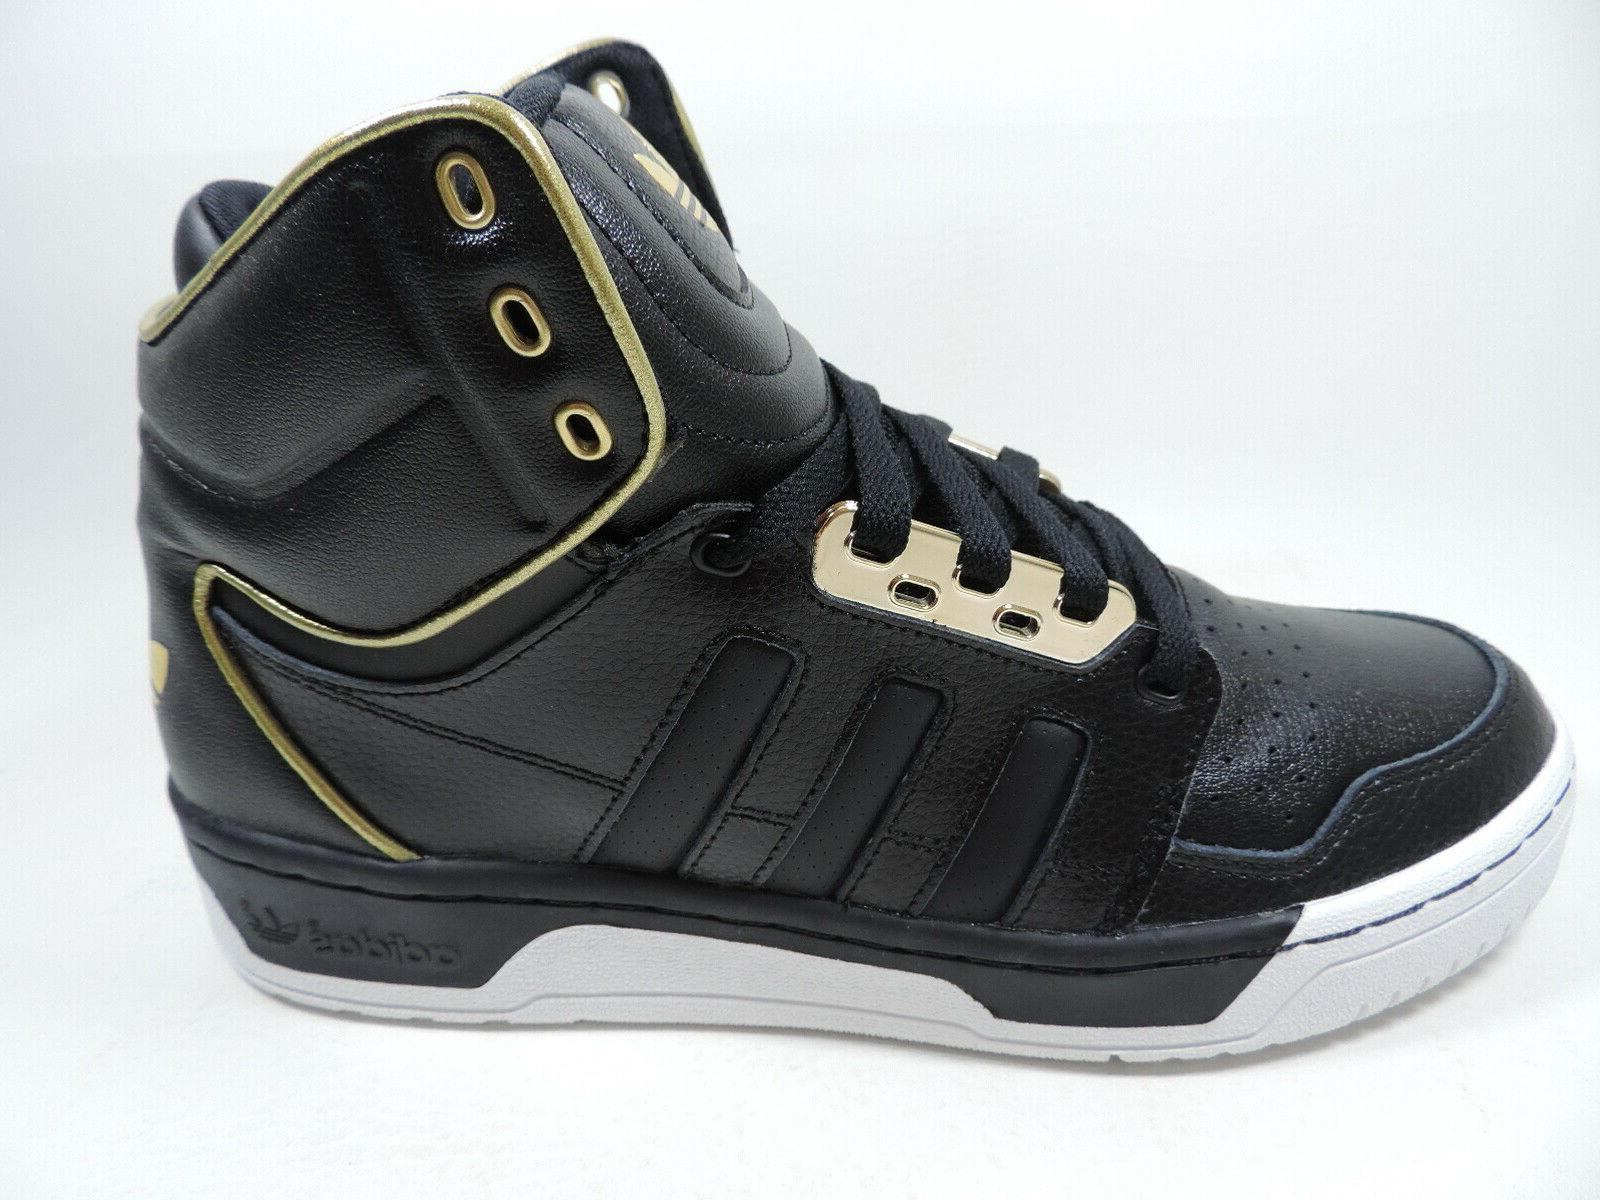 Adidas Mens Shoes Basketball Black Leather Retro